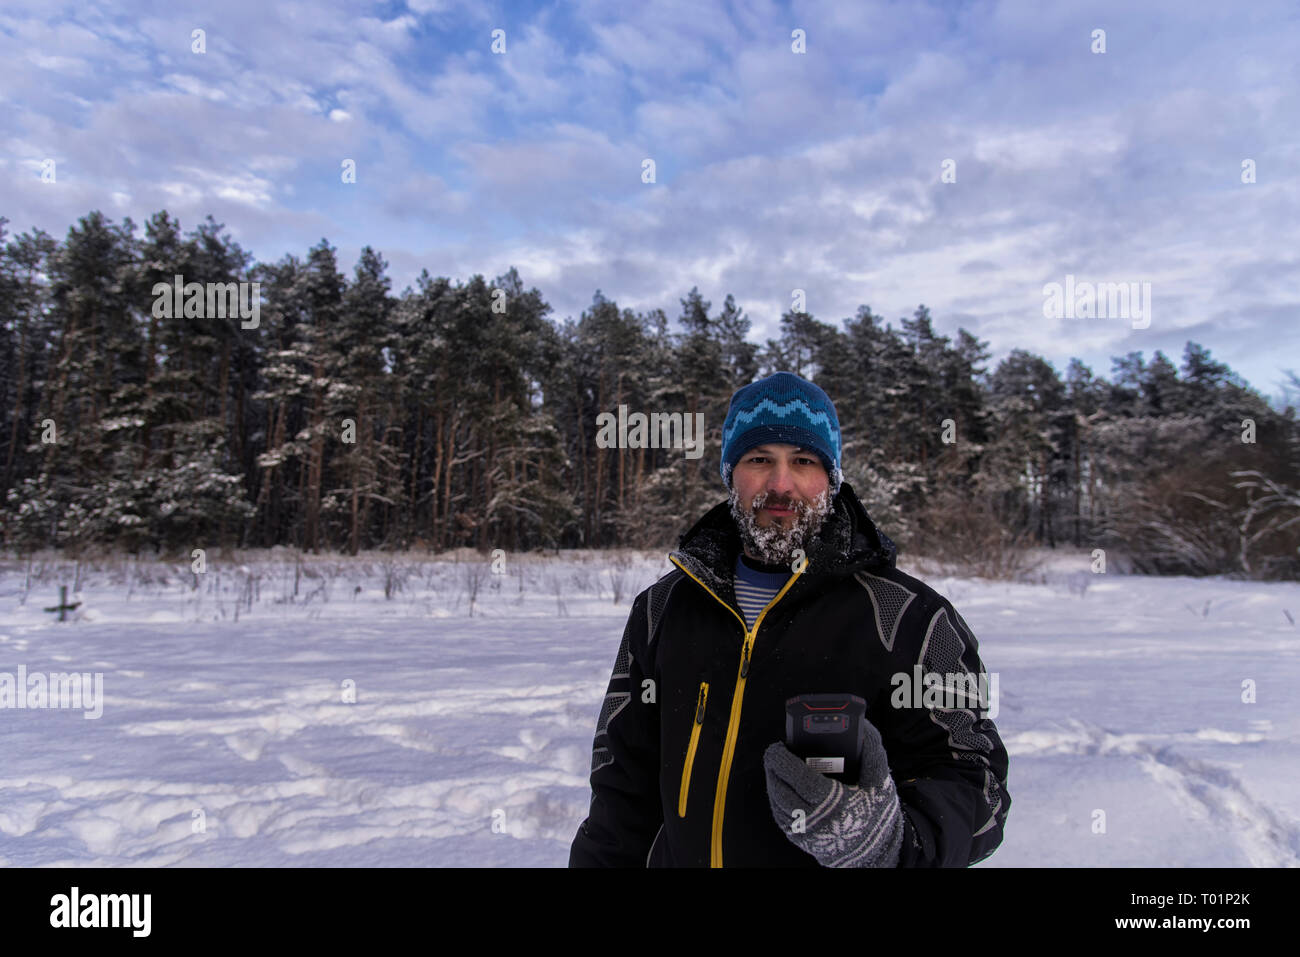 Good-natured bearded man with a snowy beard, slight smile and GPS navigator is standing on the edge of a taiga forest - Stock Image